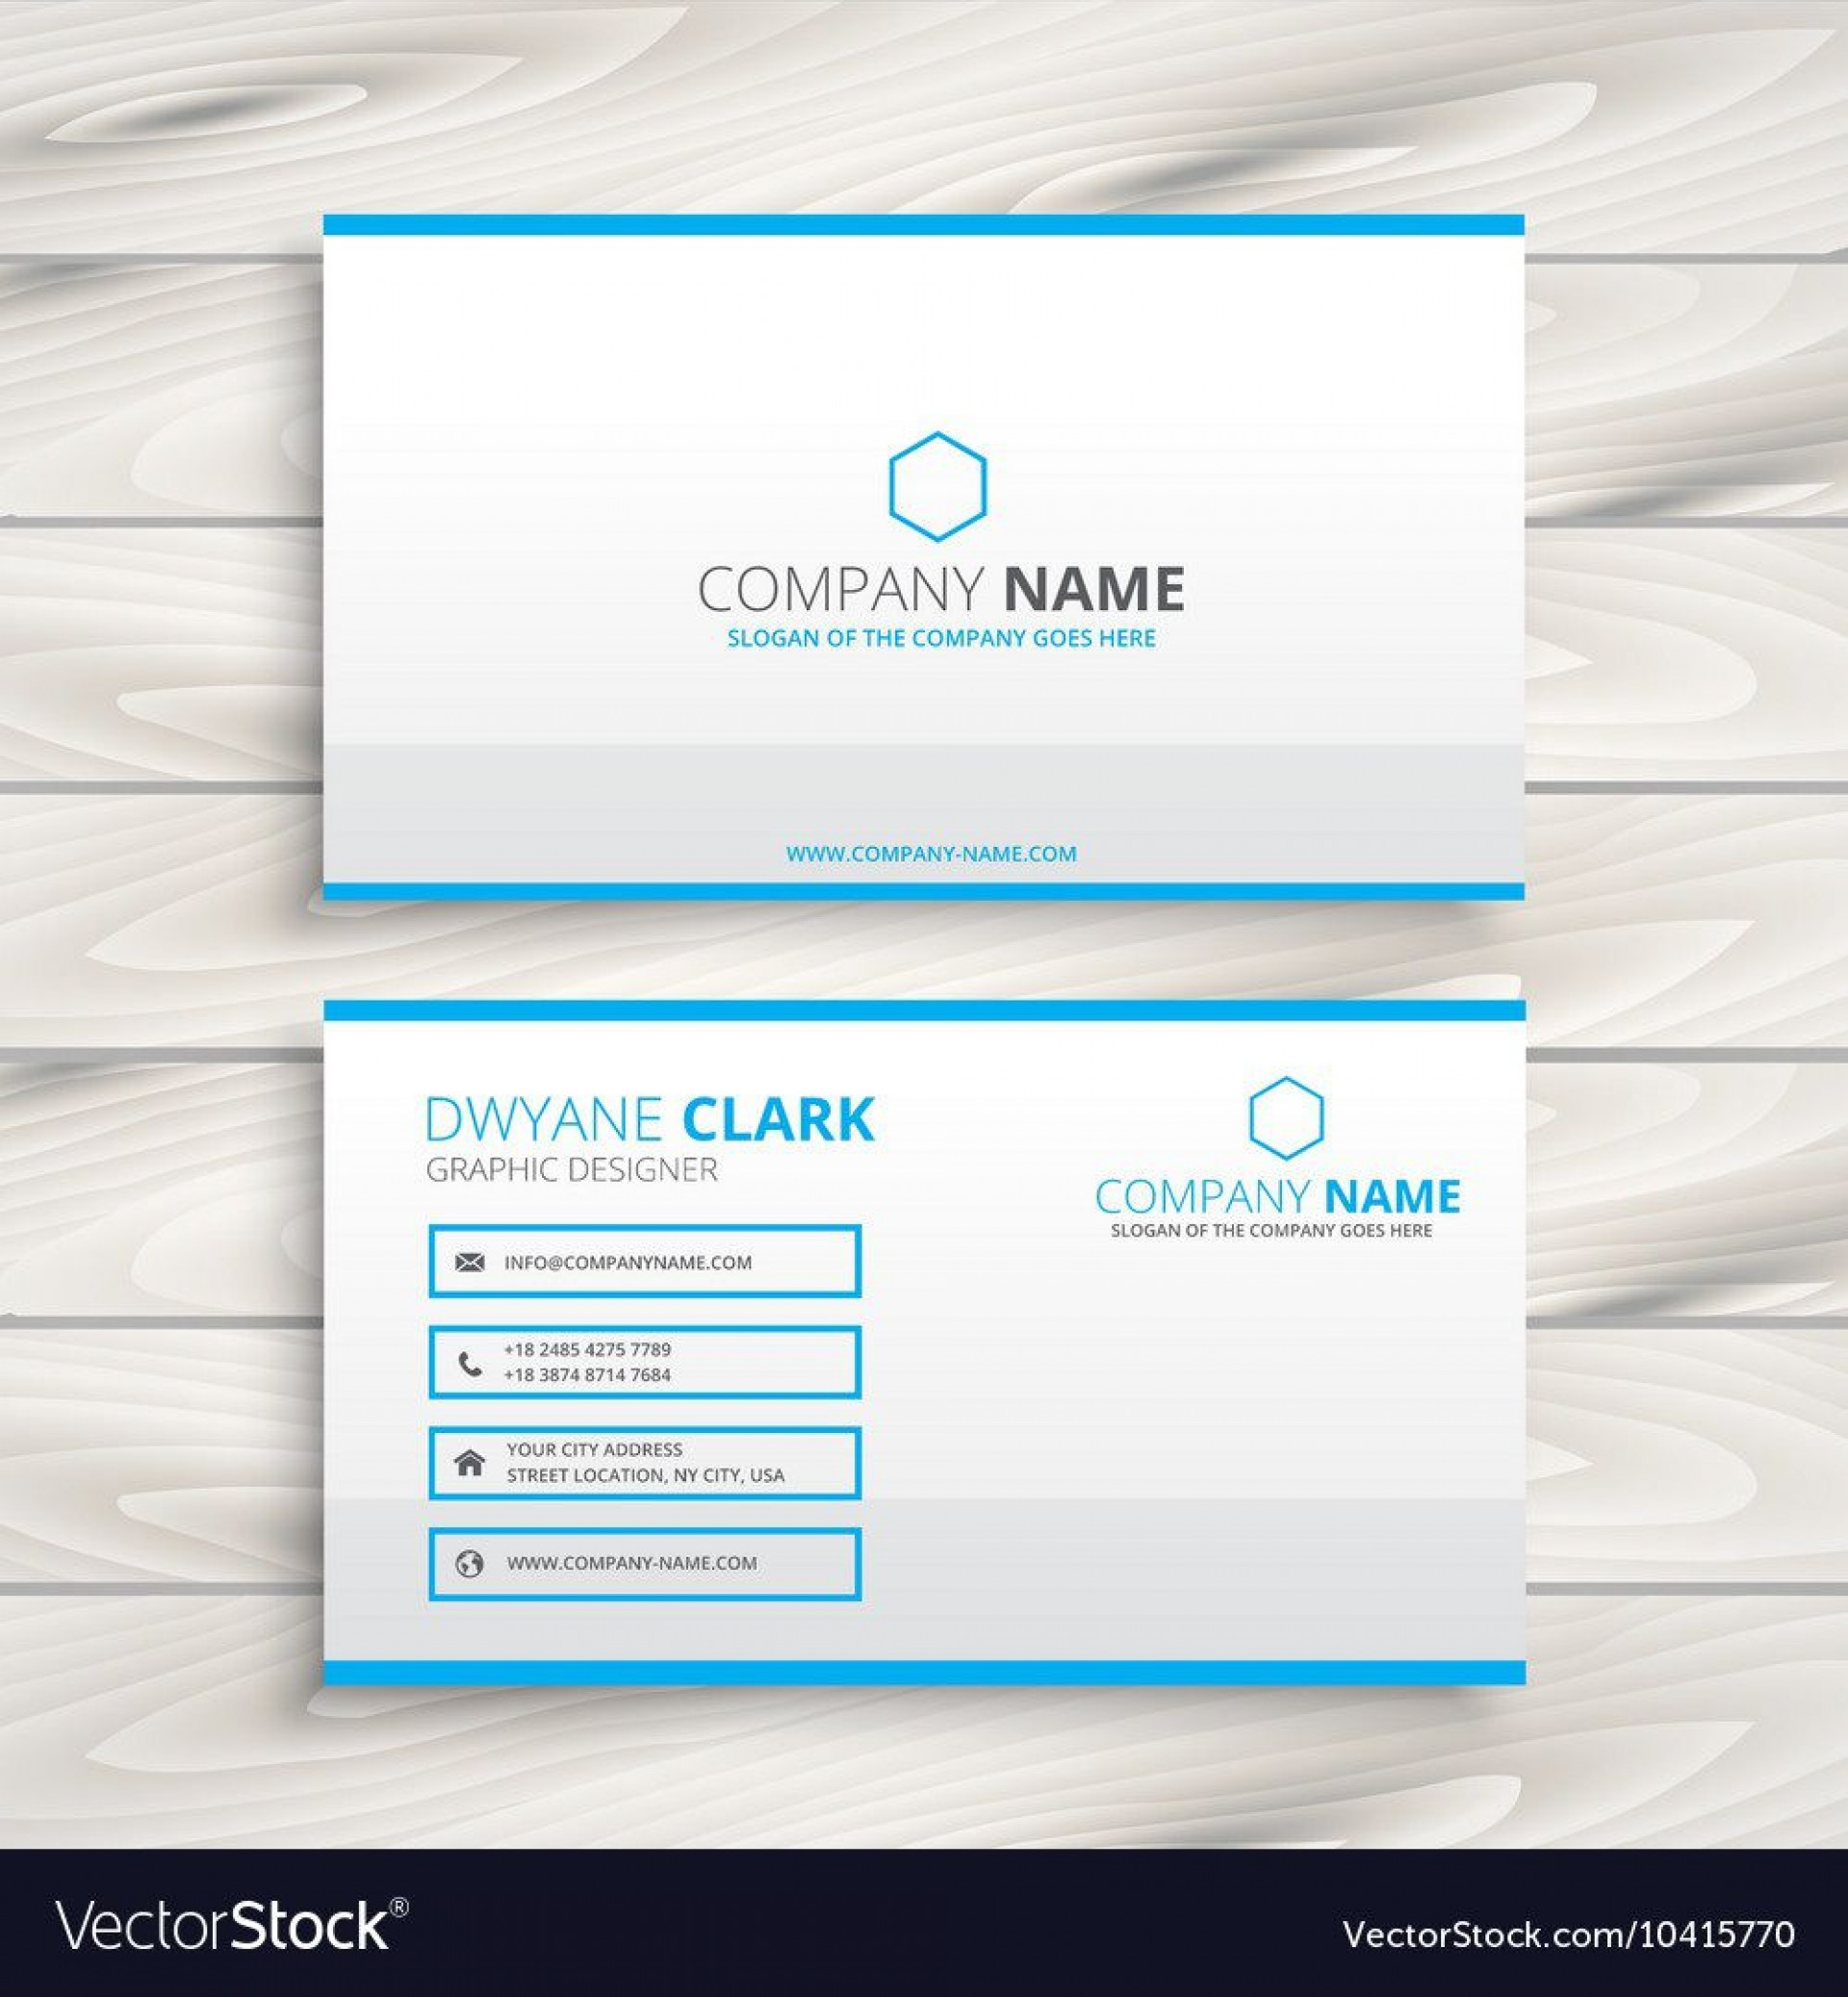 009 Shocking Minimalist Busines Card Template Free Download Example 1920